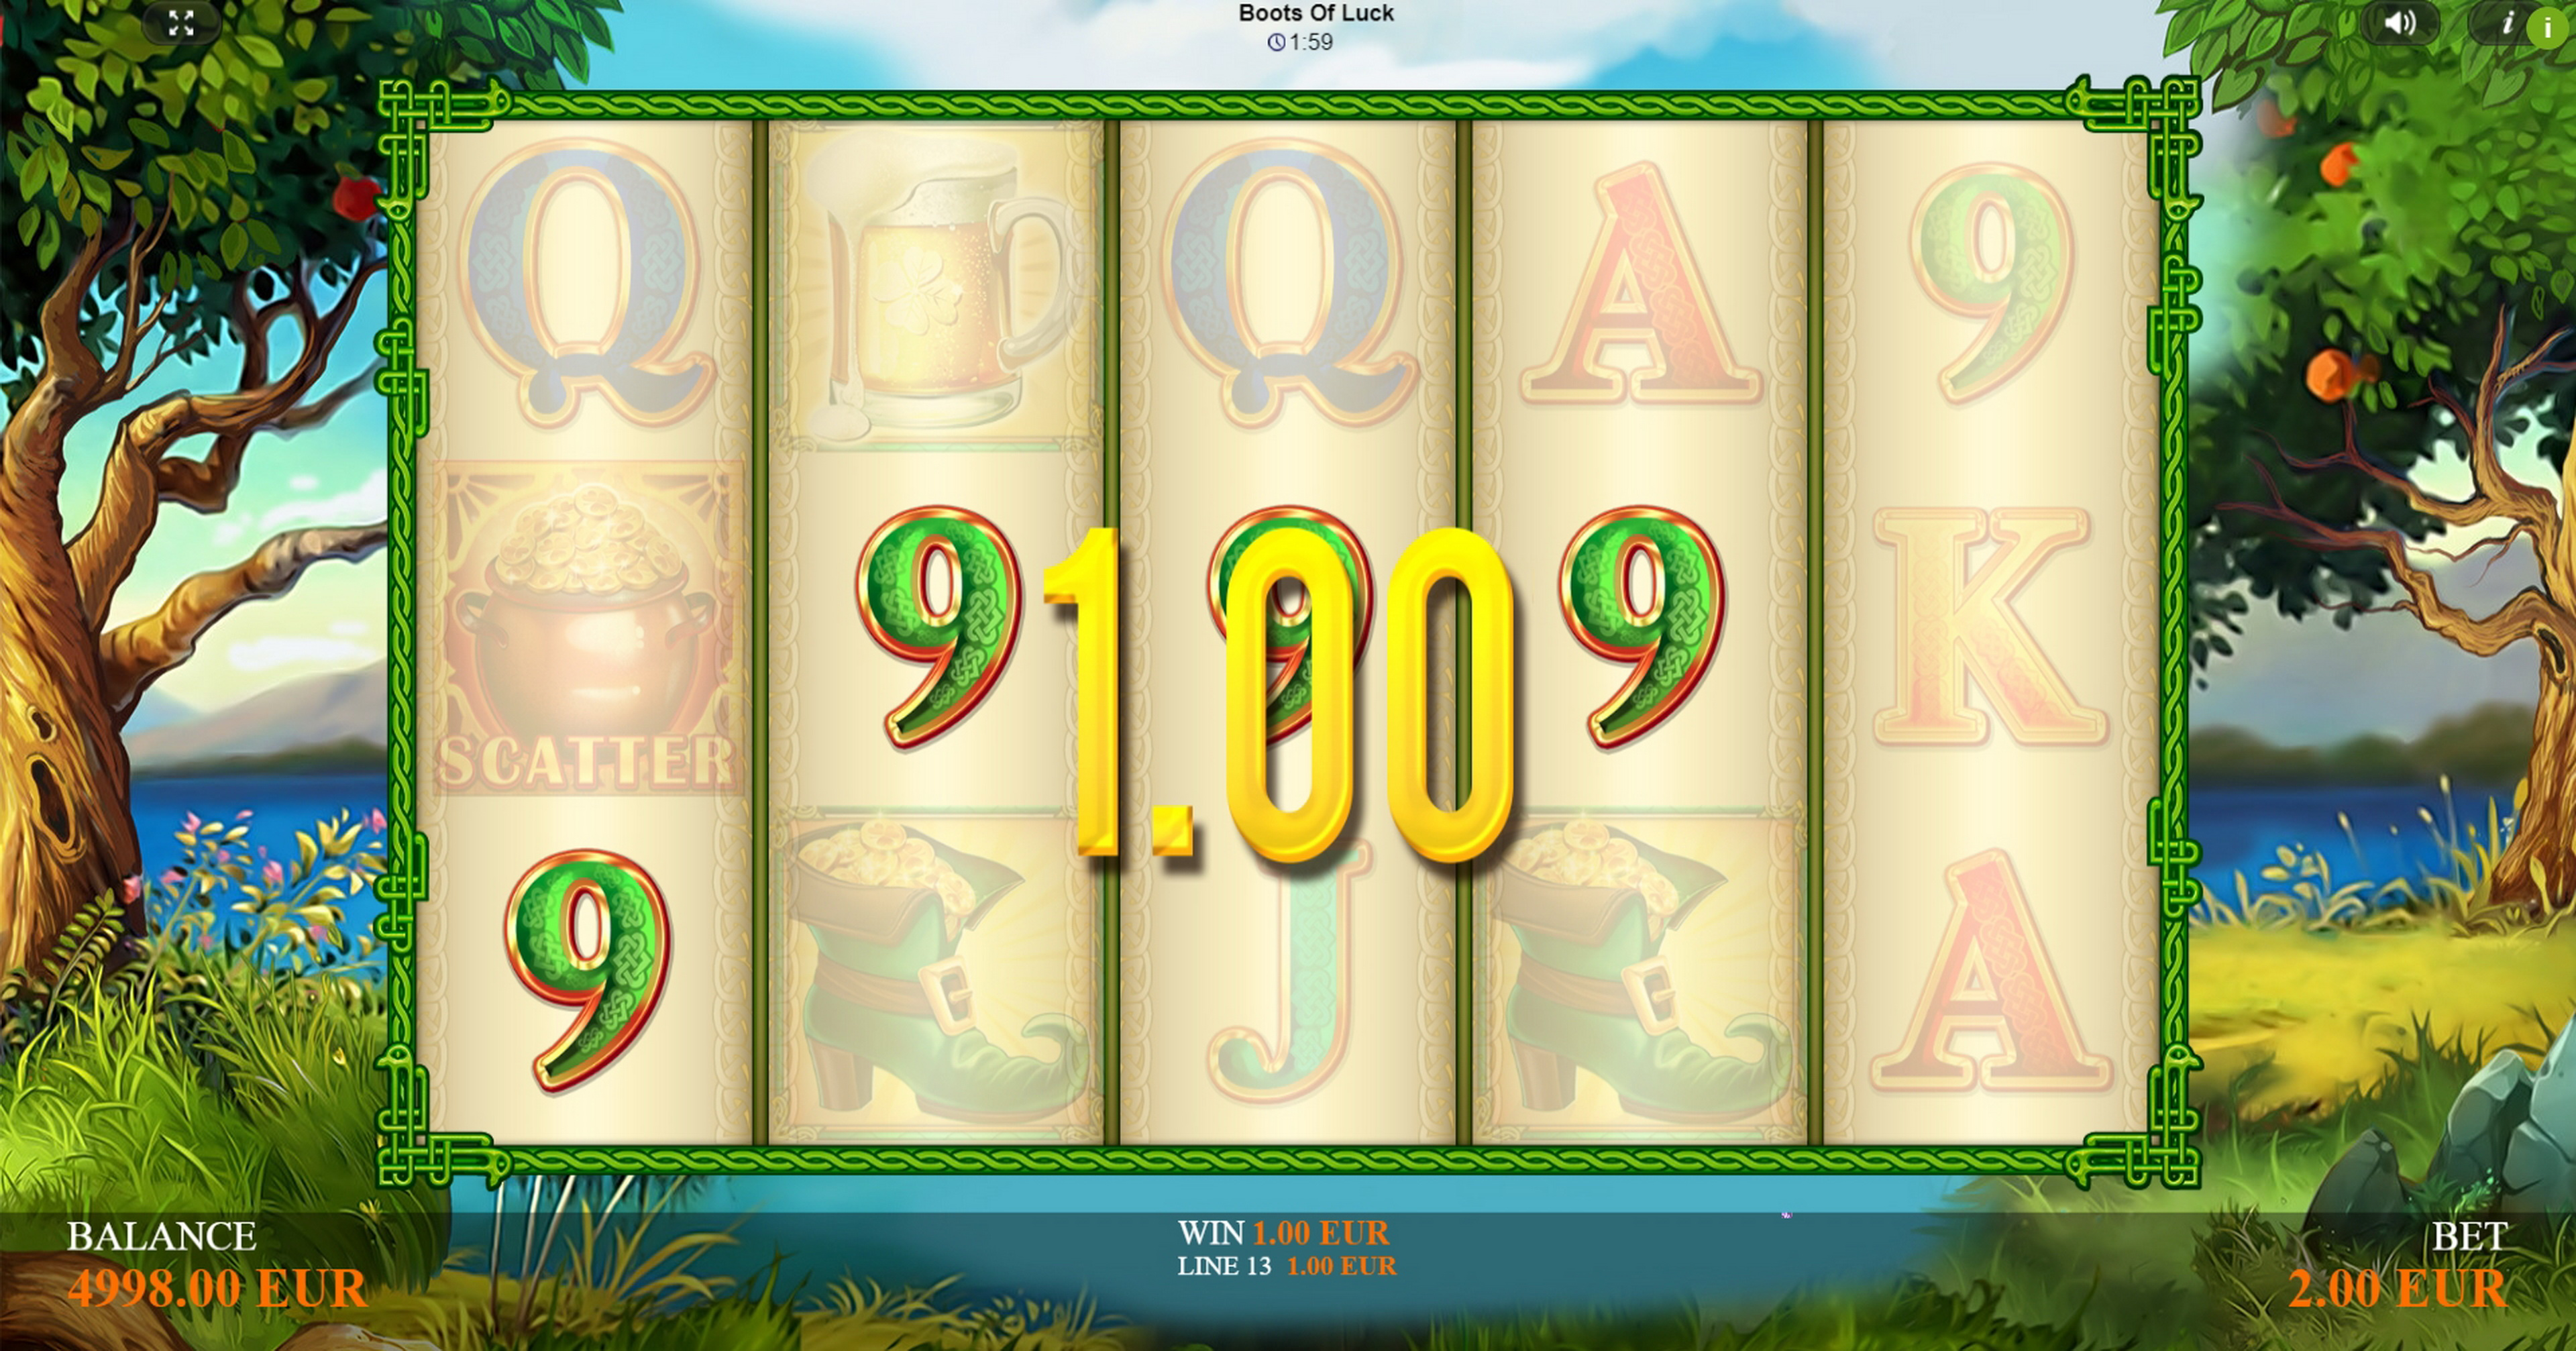 Win Money in Boots Of Luck Free Slot Game by betiXon